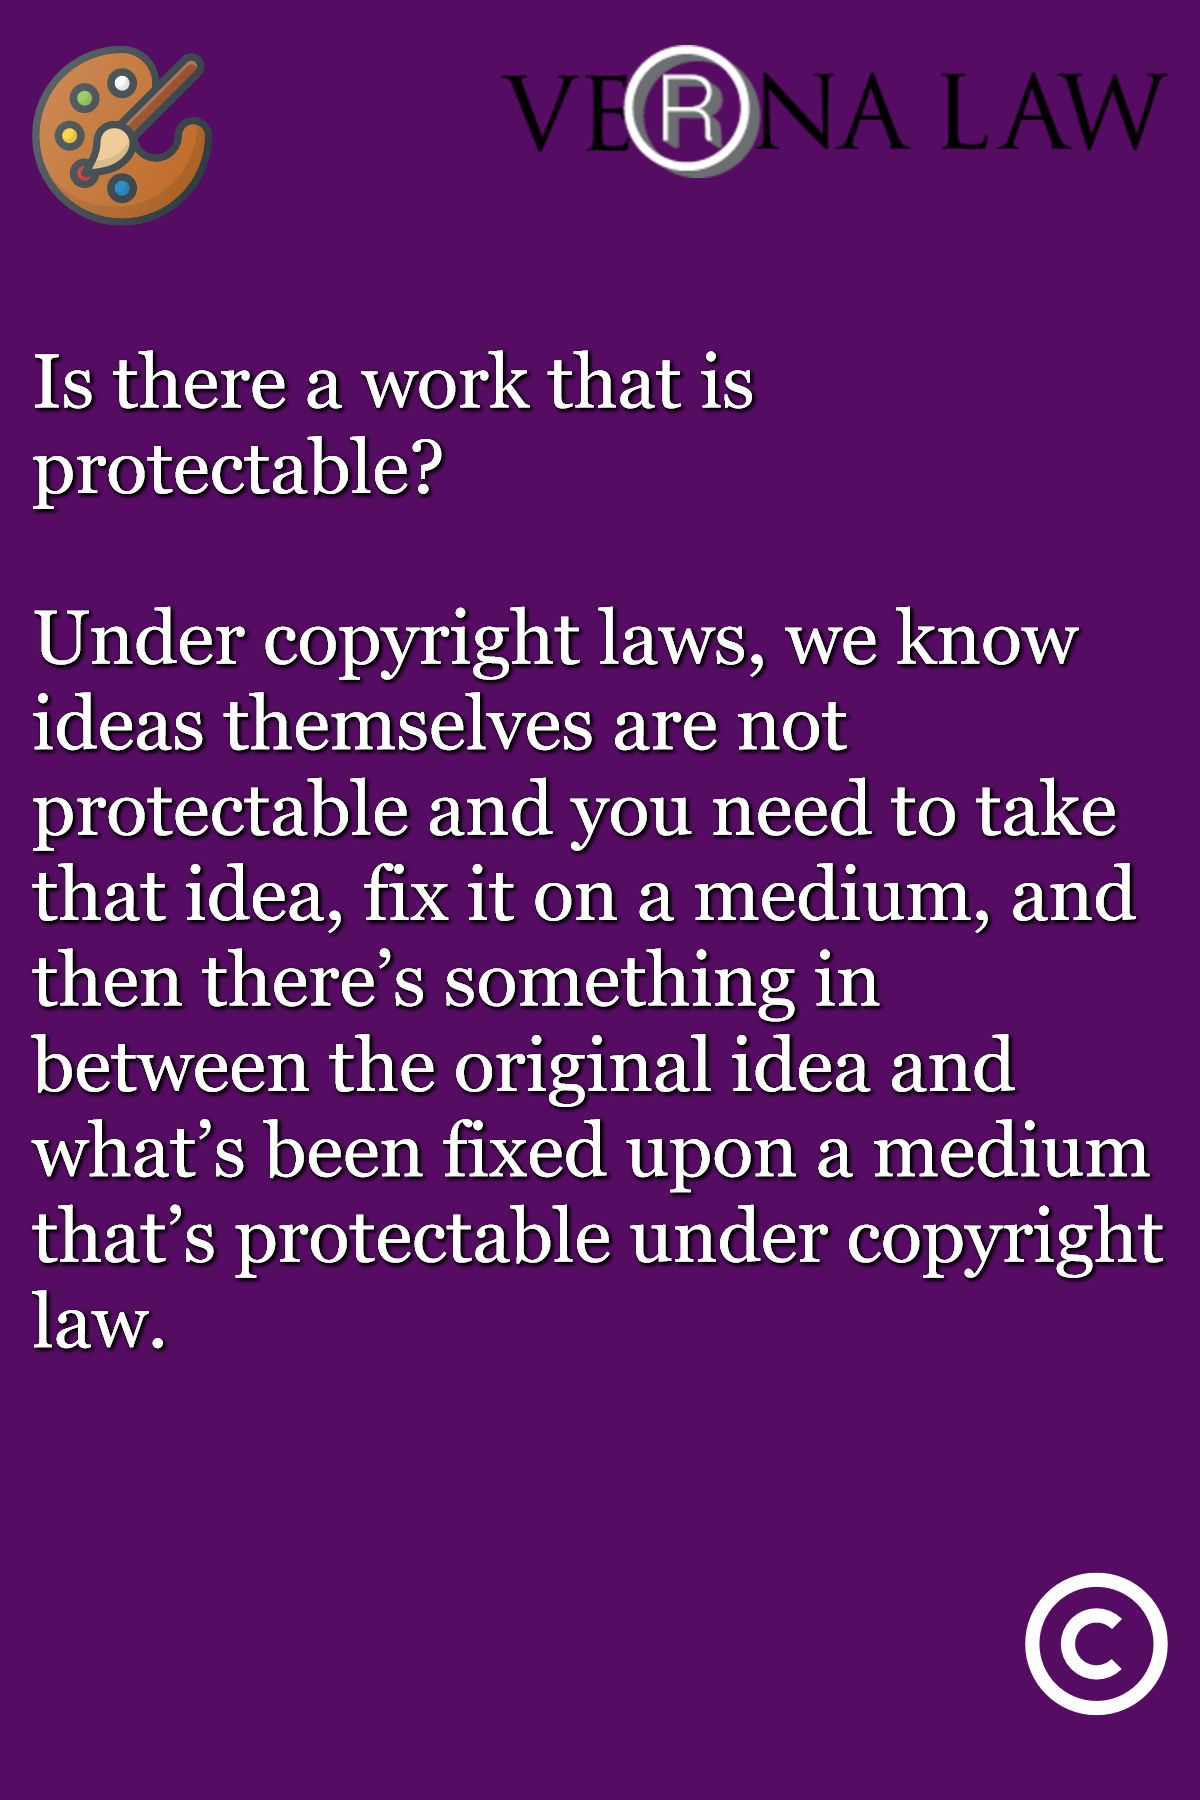 Is There A Work That Is Protectable Under Copyright Laws We Know Ideas Themselves Are Not Protectable And You Need To Business Podcasts Podcasts Tax Lawyer